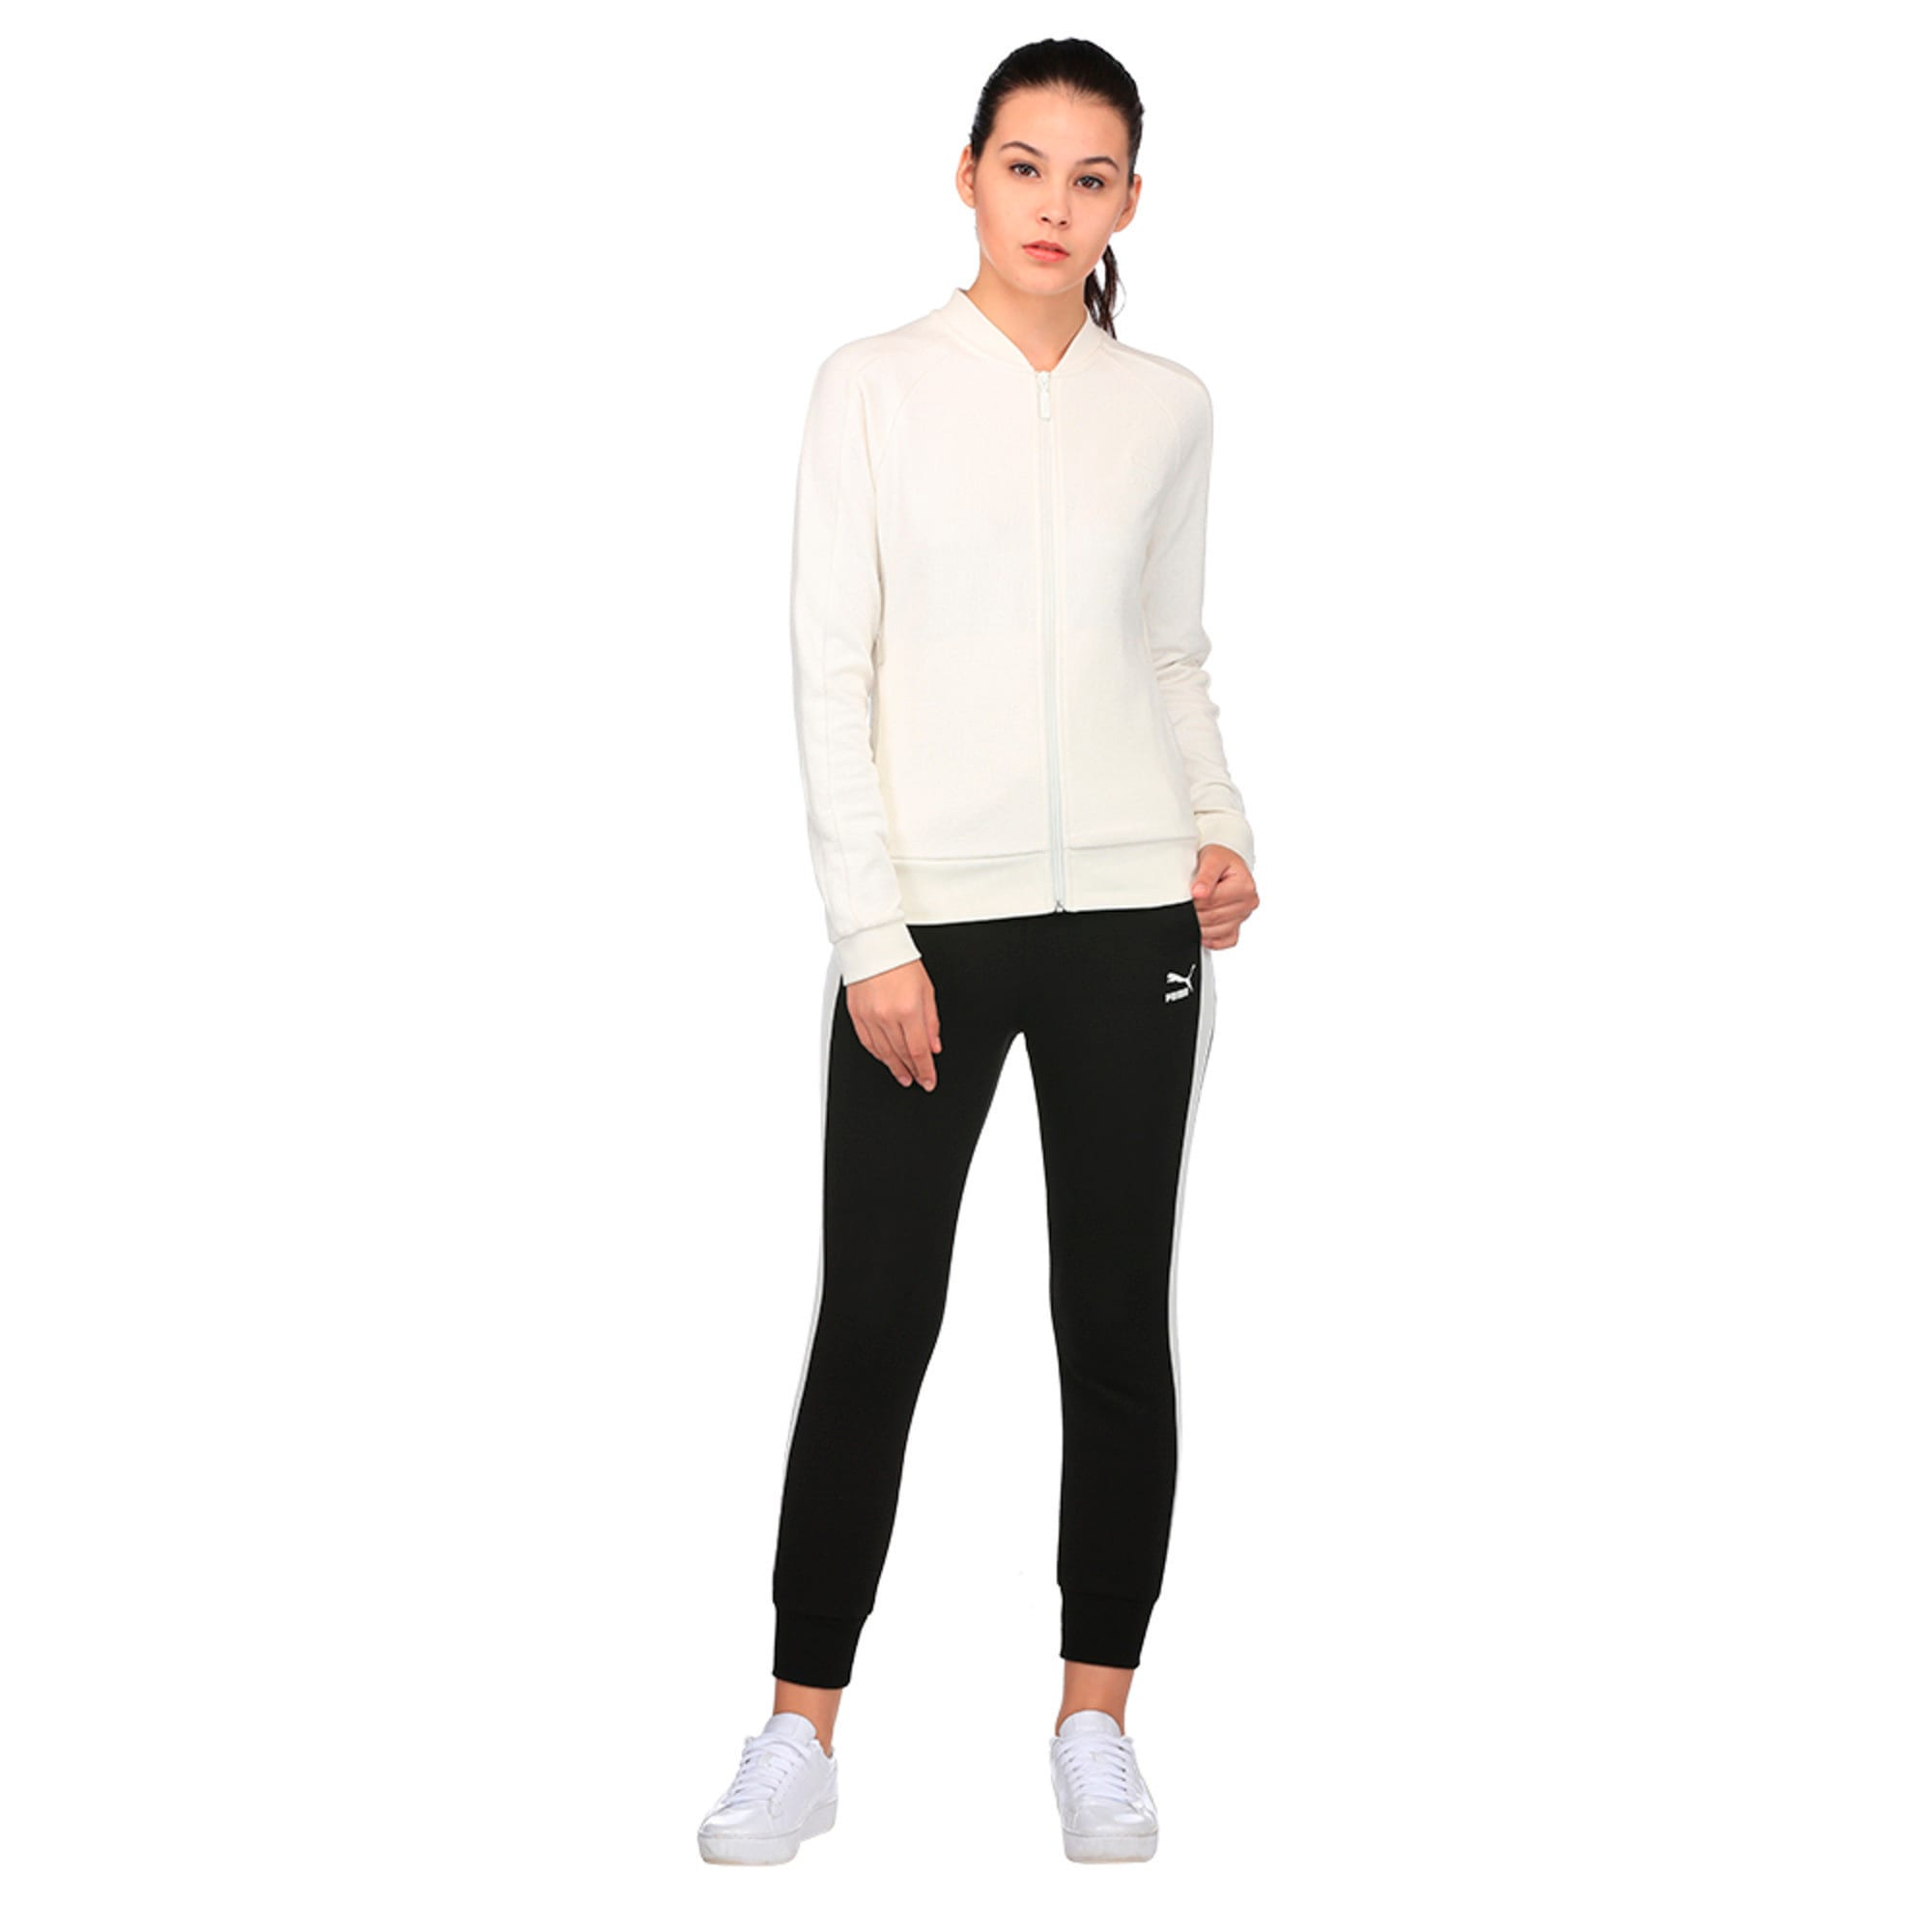 Thumbnail 4 of Classics Women's Structured Archive T7 Track Jacket, Marshmallow, medium-IND